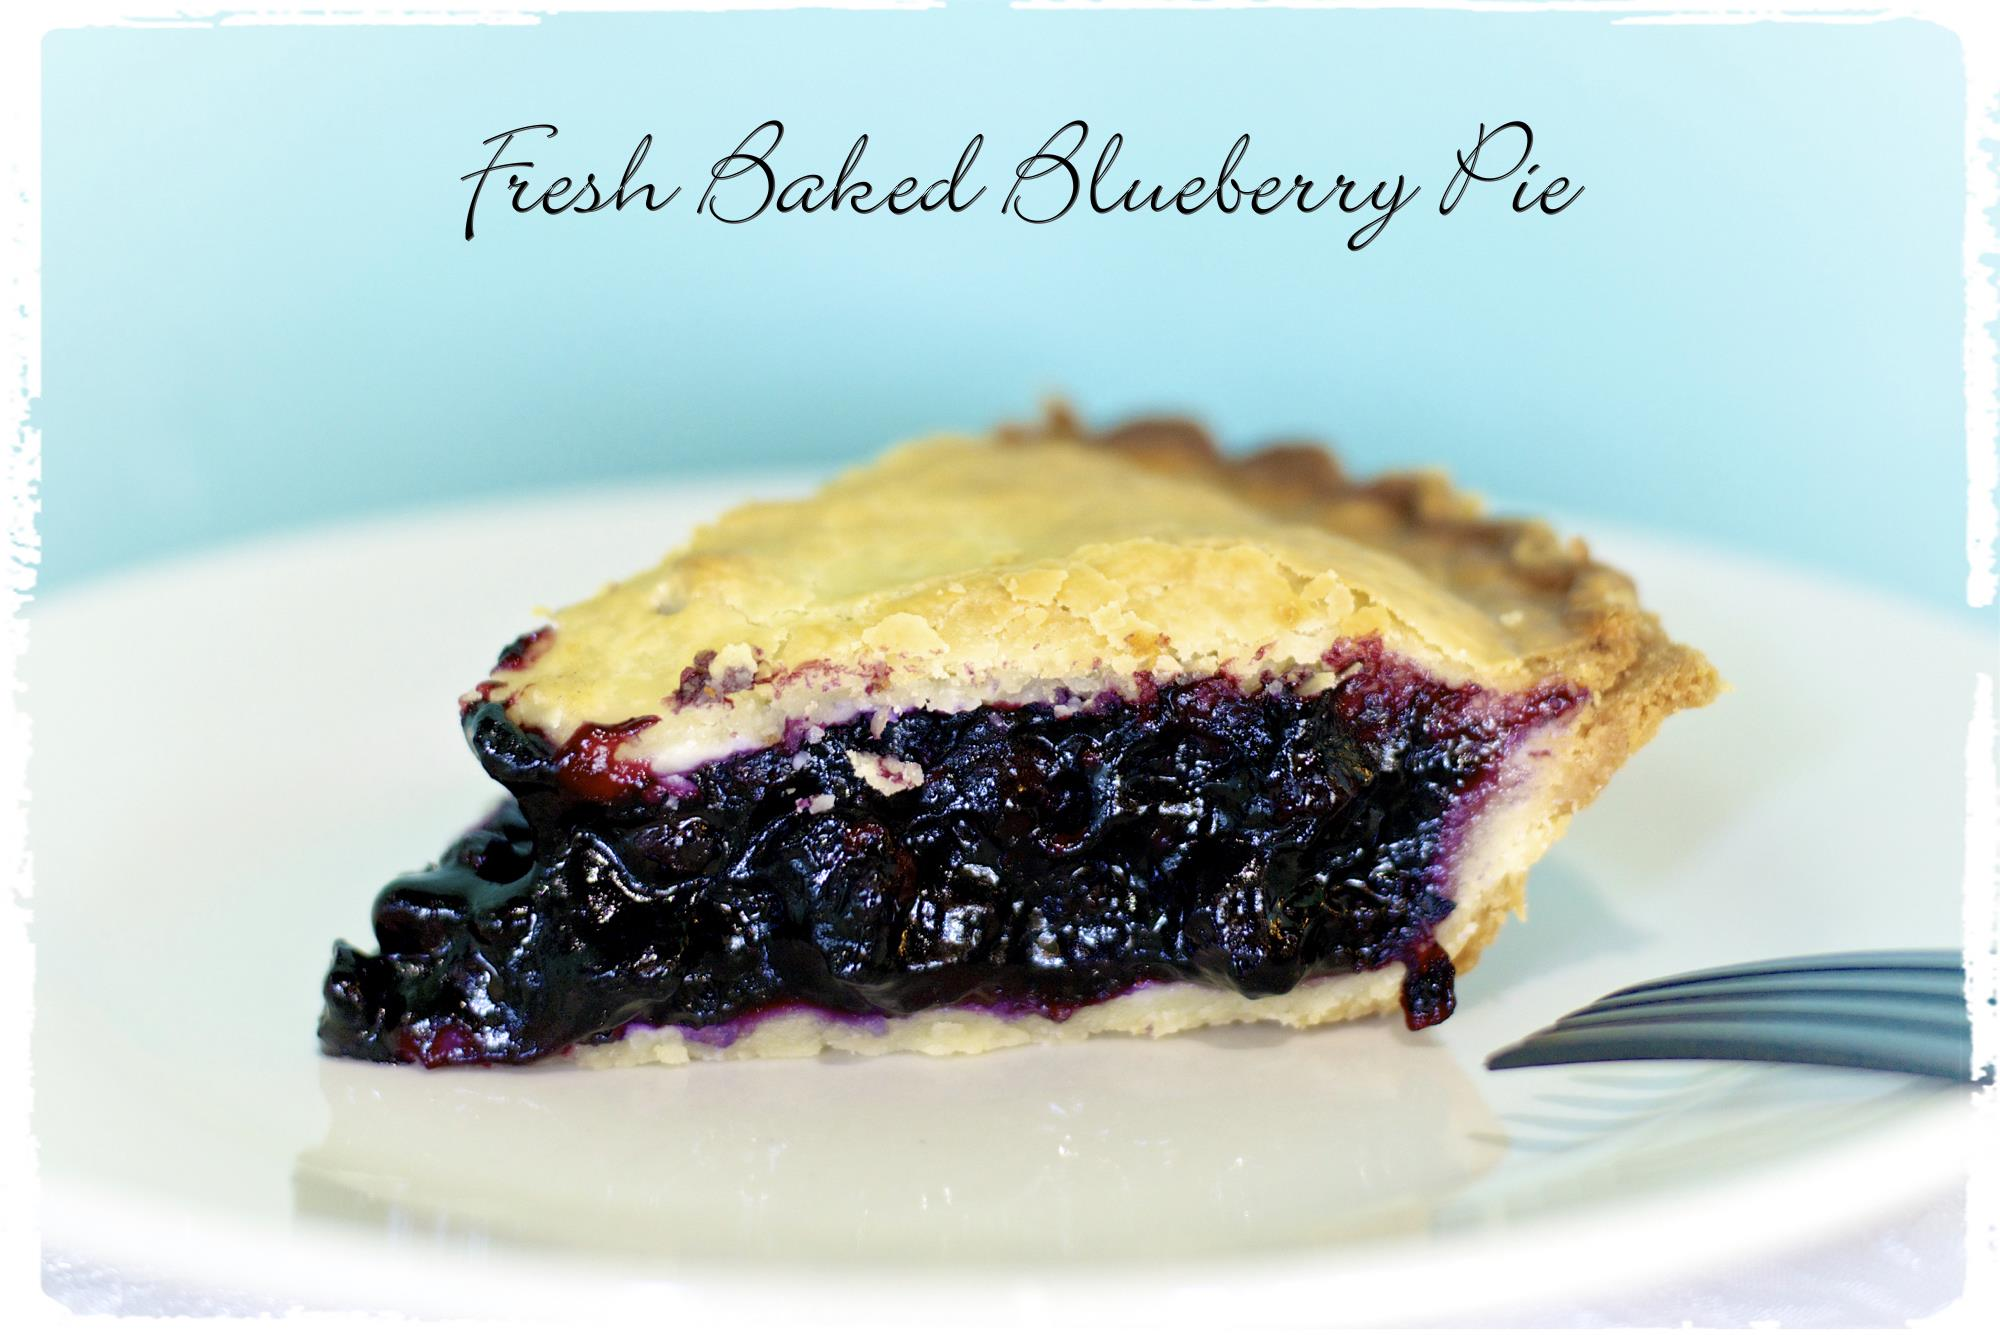 Fresh Baked Blueberry Pie